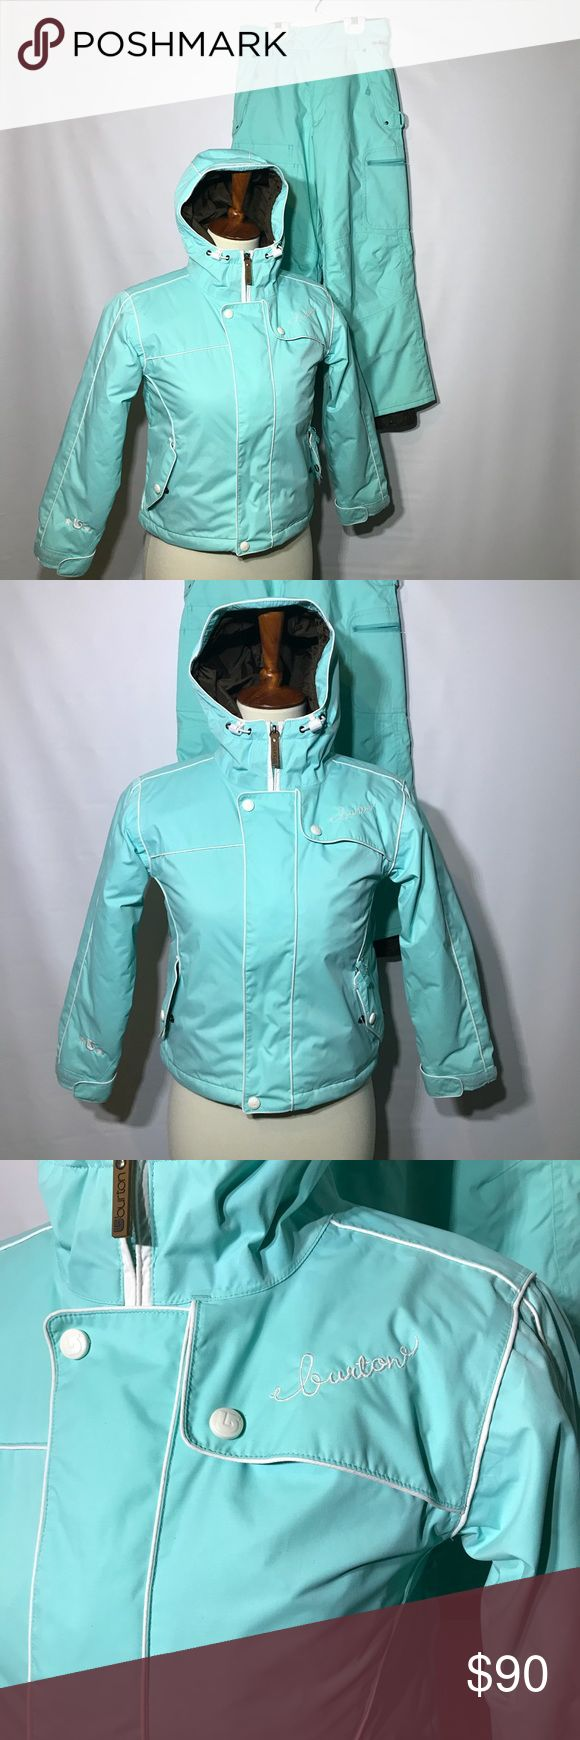 Burton Ski Jacket And Pants Size Small/Medium Burton girls Ski Jacket And Pants Size Small/Medium: The jacket is a size small and is in great condition. The pants are a size medium and they have a small tear in the right front size as well as a small smudge. Burton Jackets & Coats